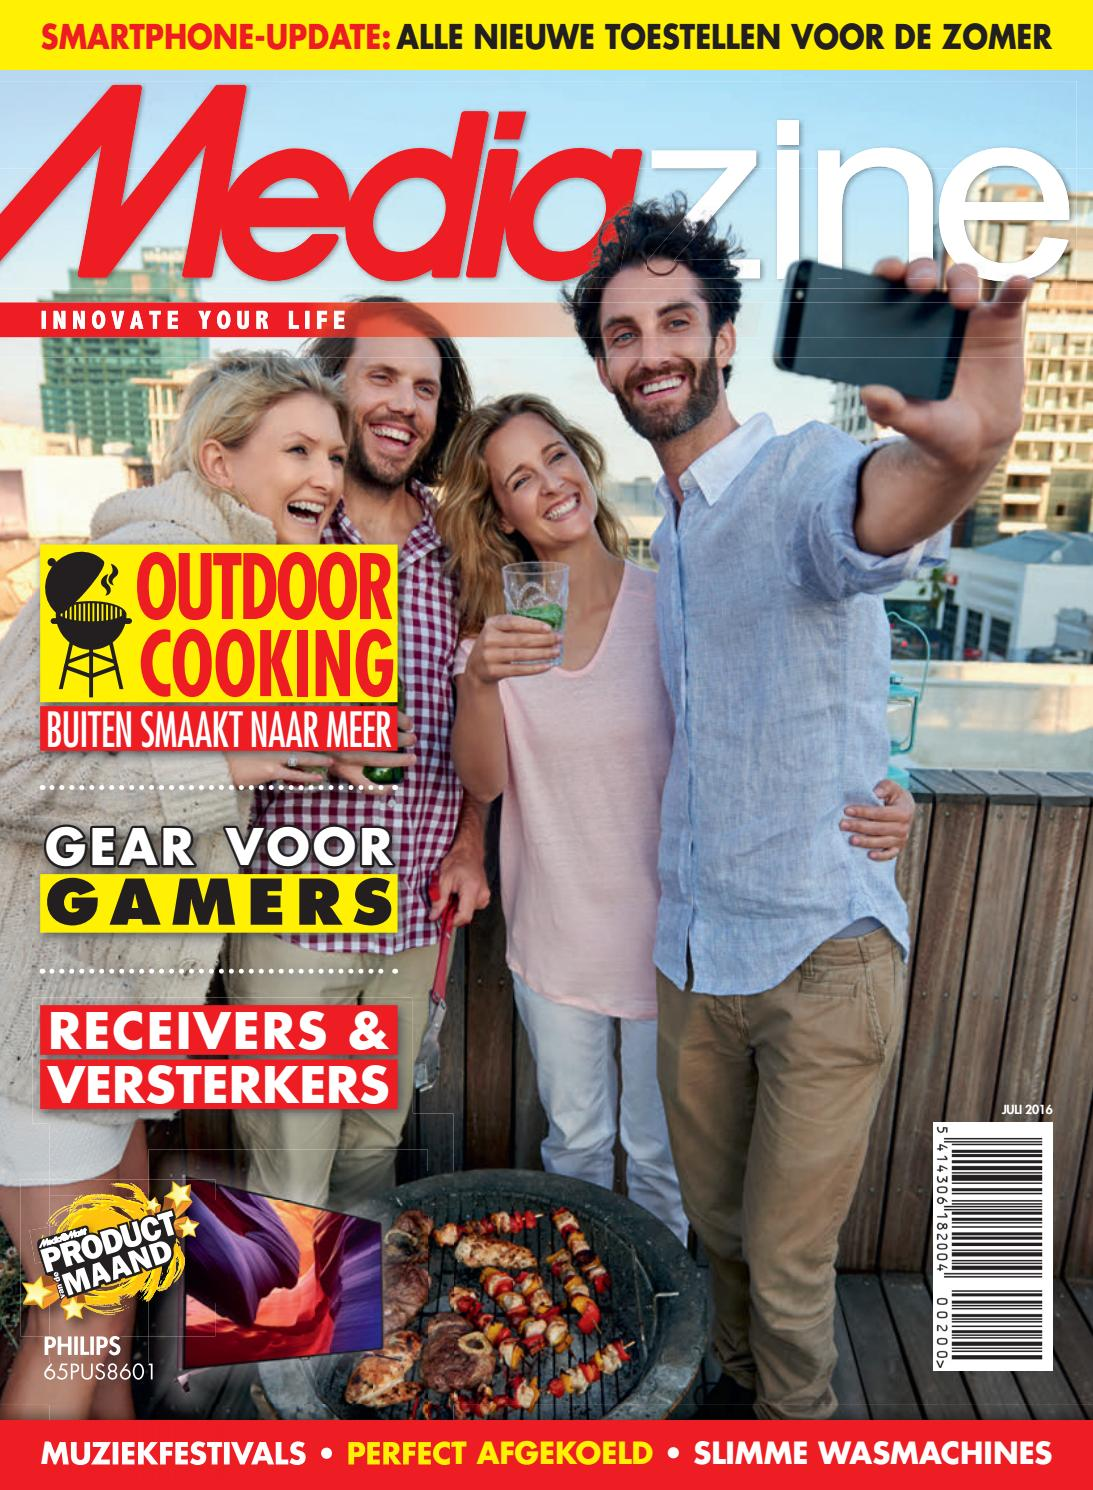 Mediazine belgië juli 2015 by contentconnections   issuu